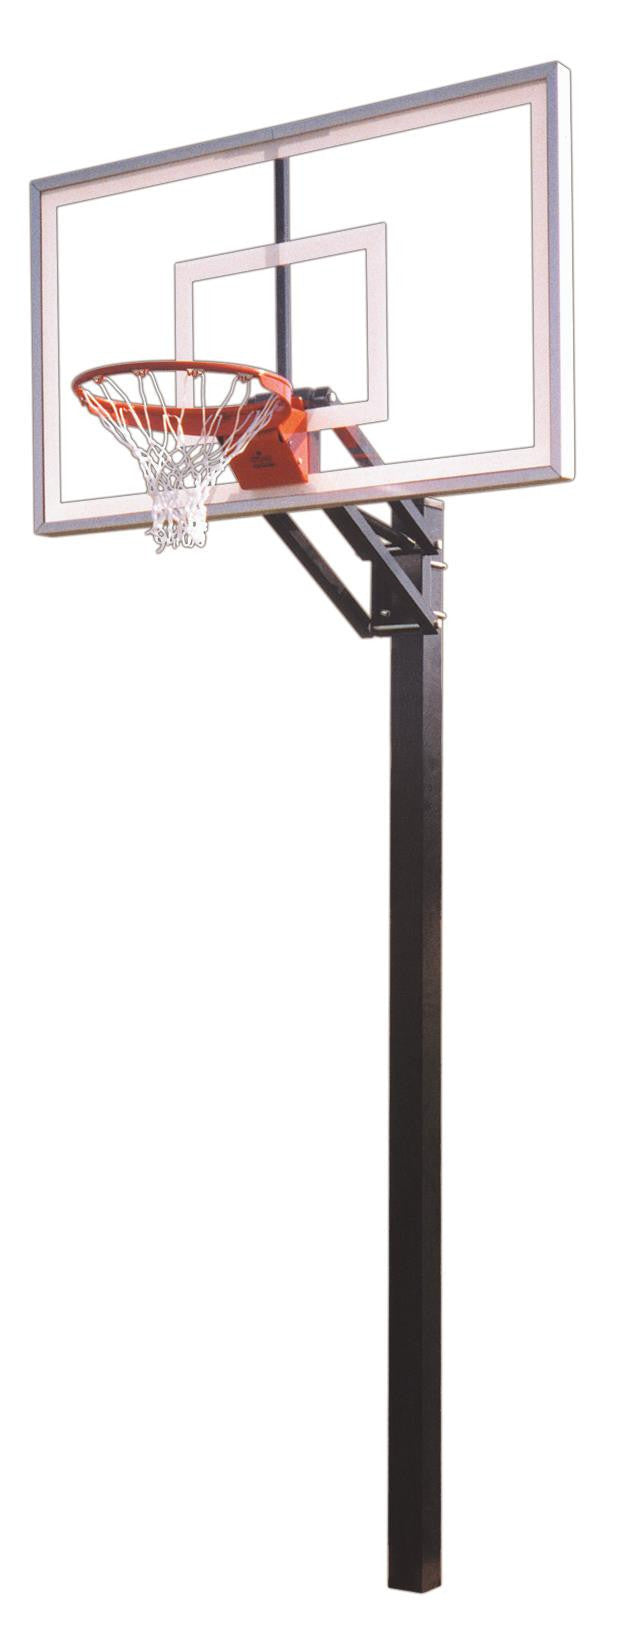 First Team Champ Nitro In Ground Outdoor Adjustable Basketball Hoop 60 inch Tempered Glass